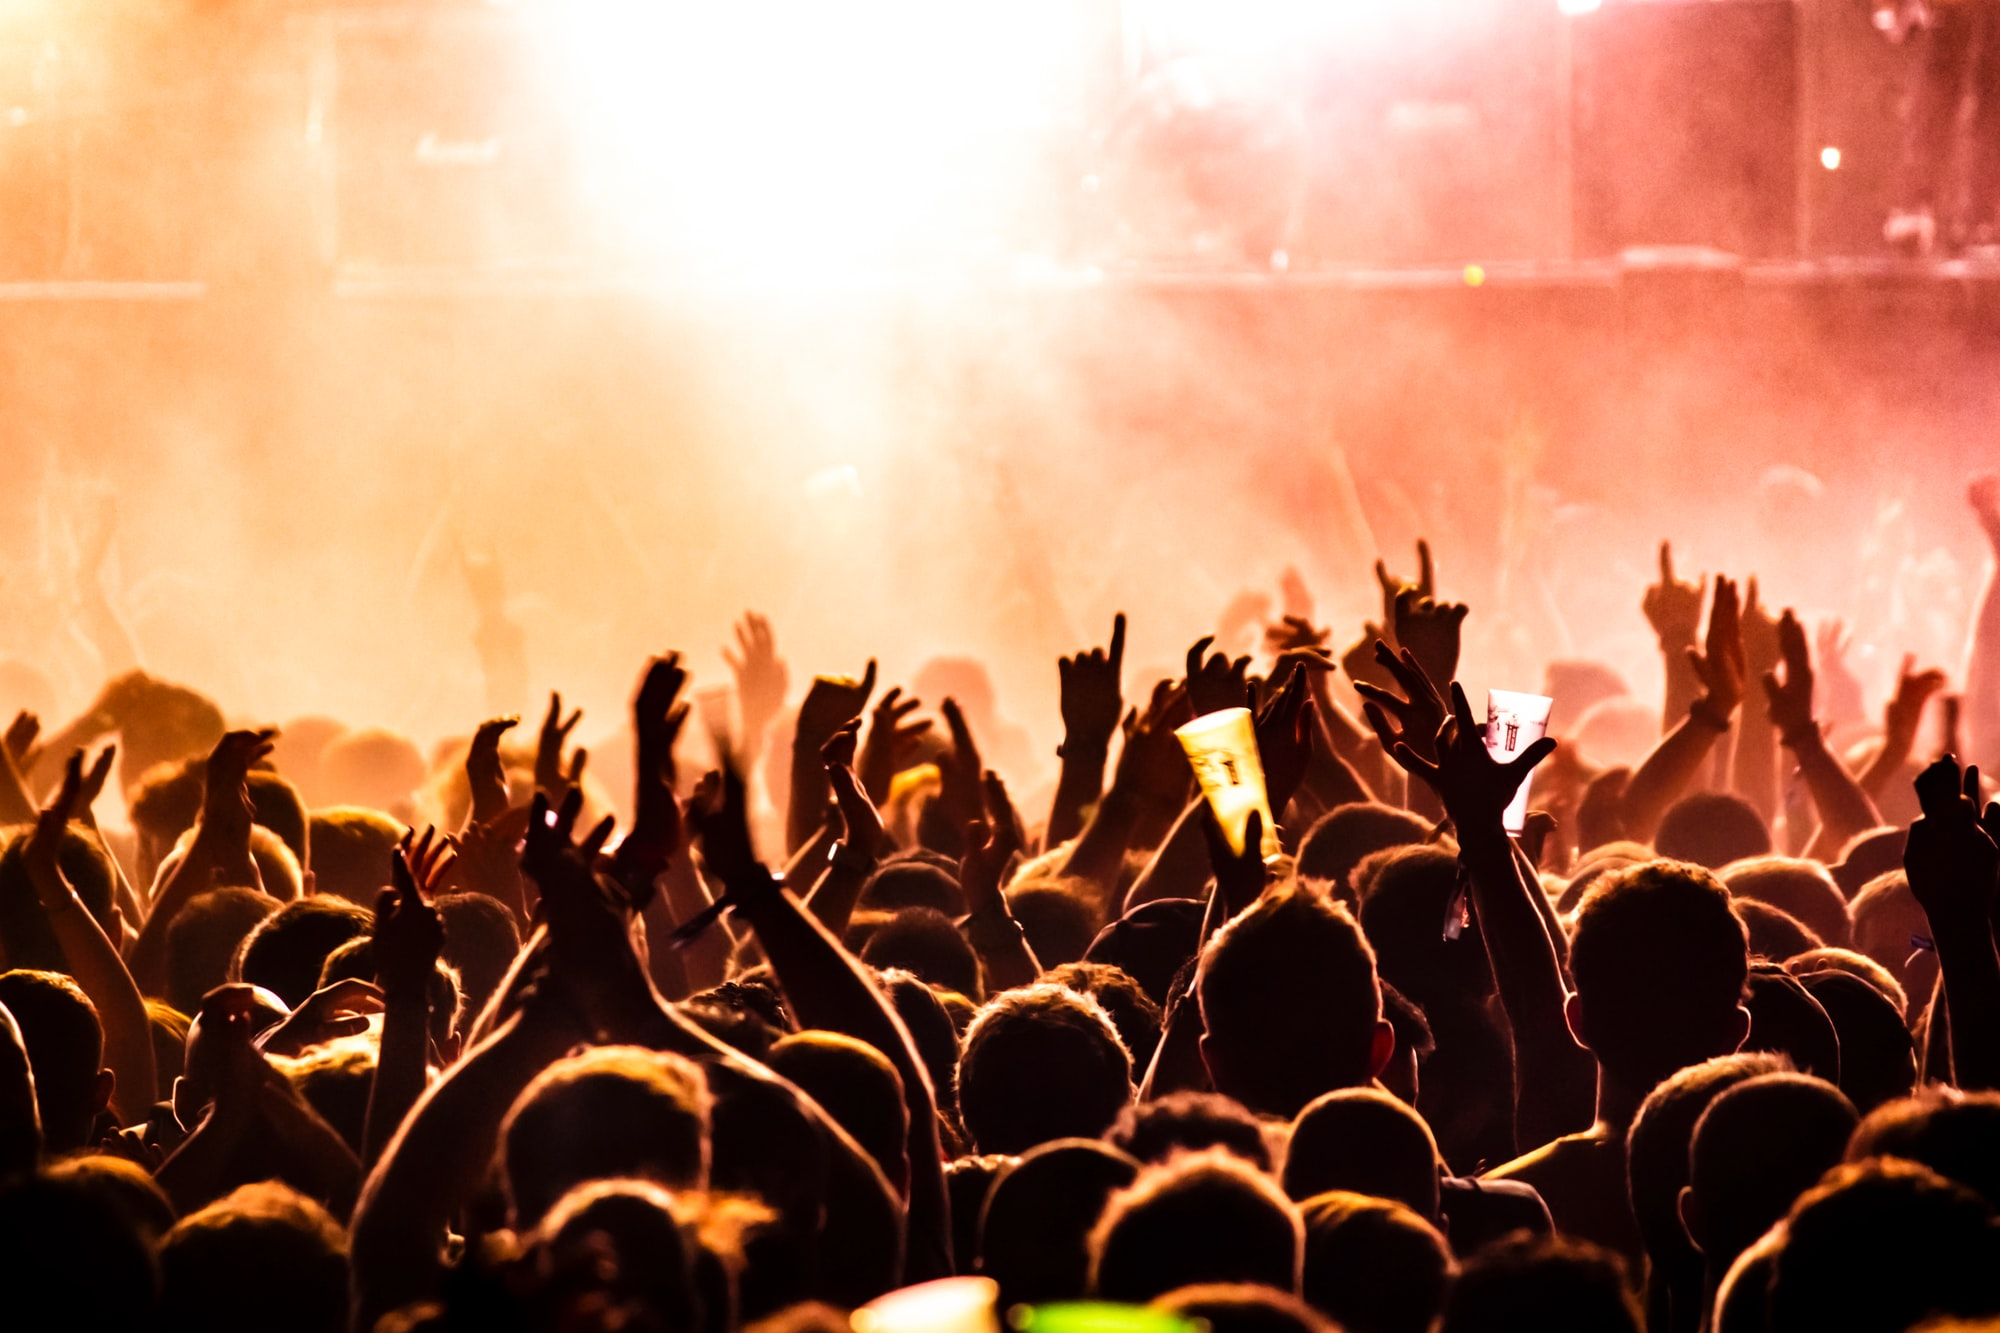 Crowd of people cheering at a live concert